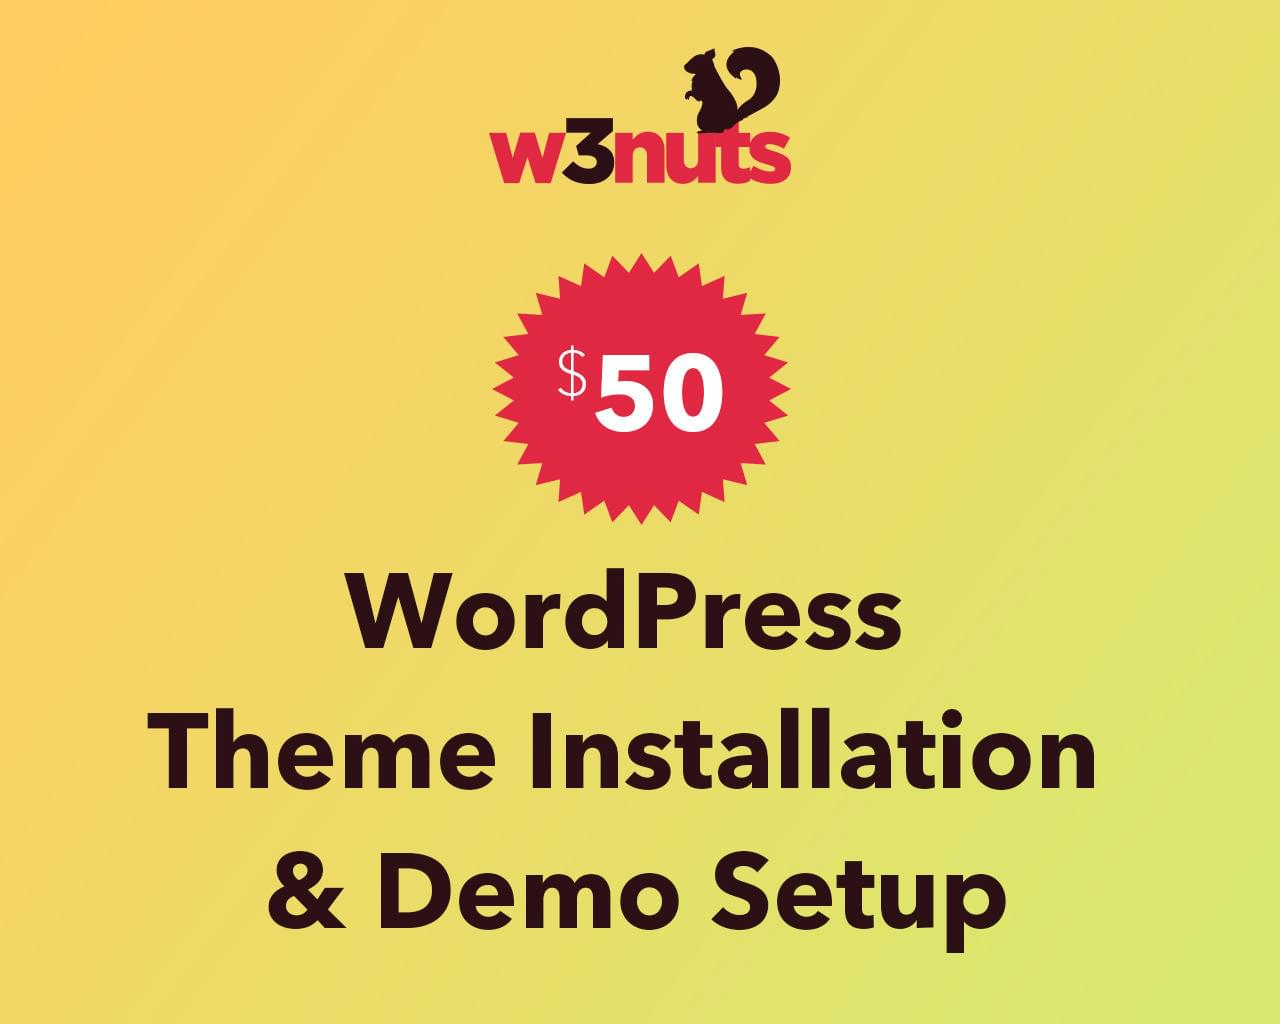 Wordpress Theme Installation & Demo Setup by samirkaila - 116072